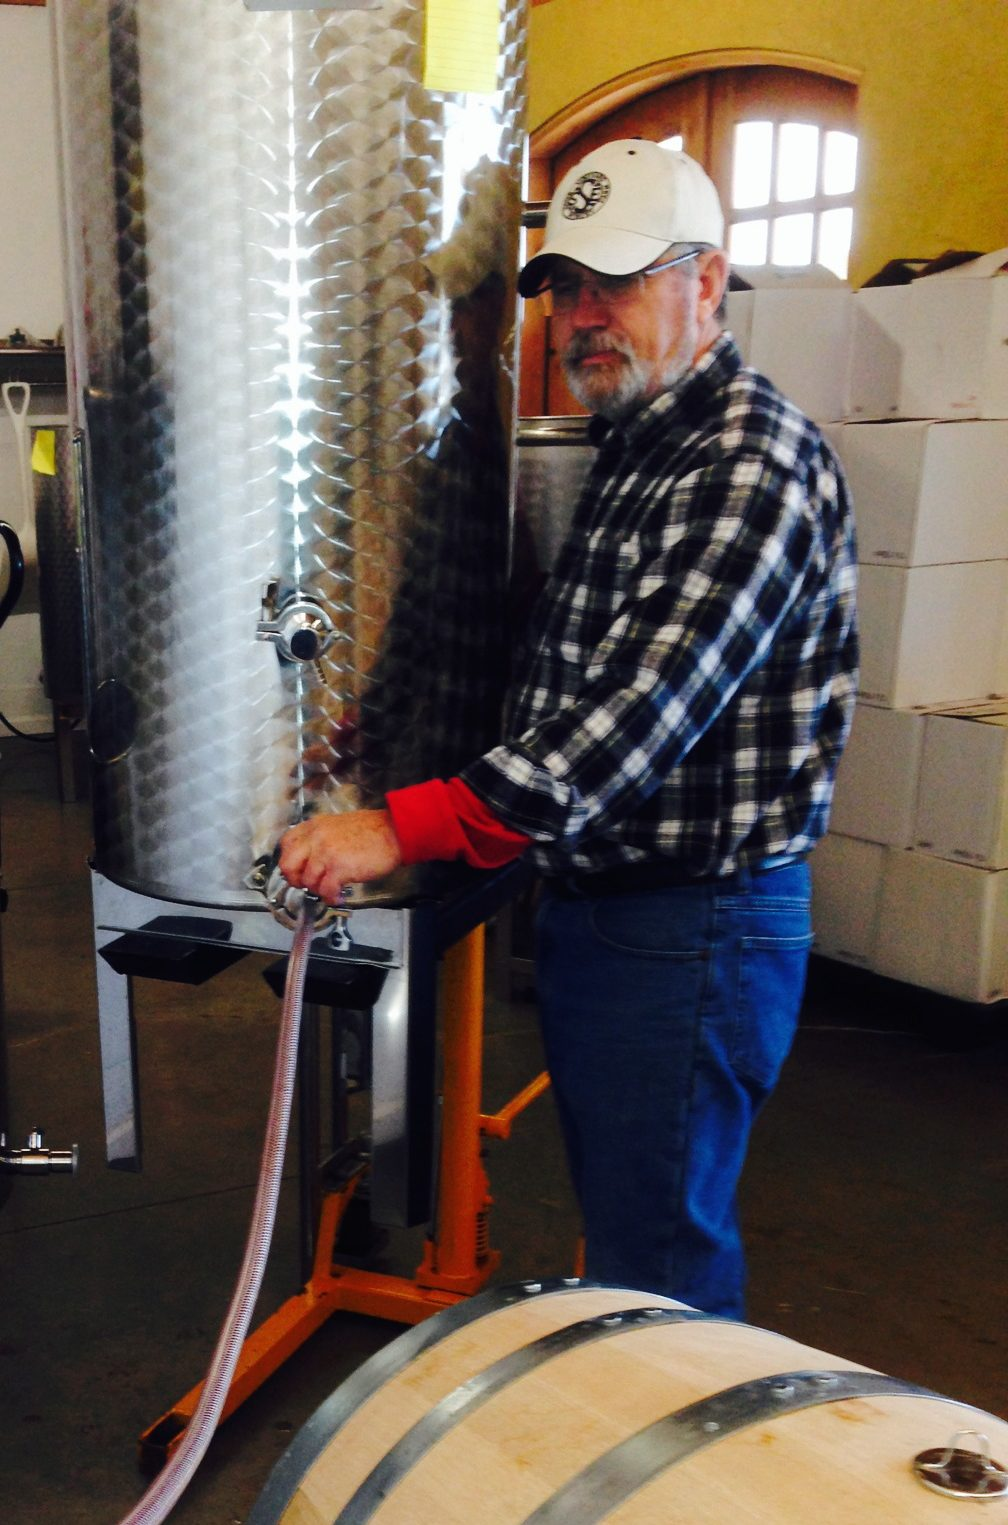 Winemaker Chuck Belt-Spout Spring Estates Winery and Vineyard